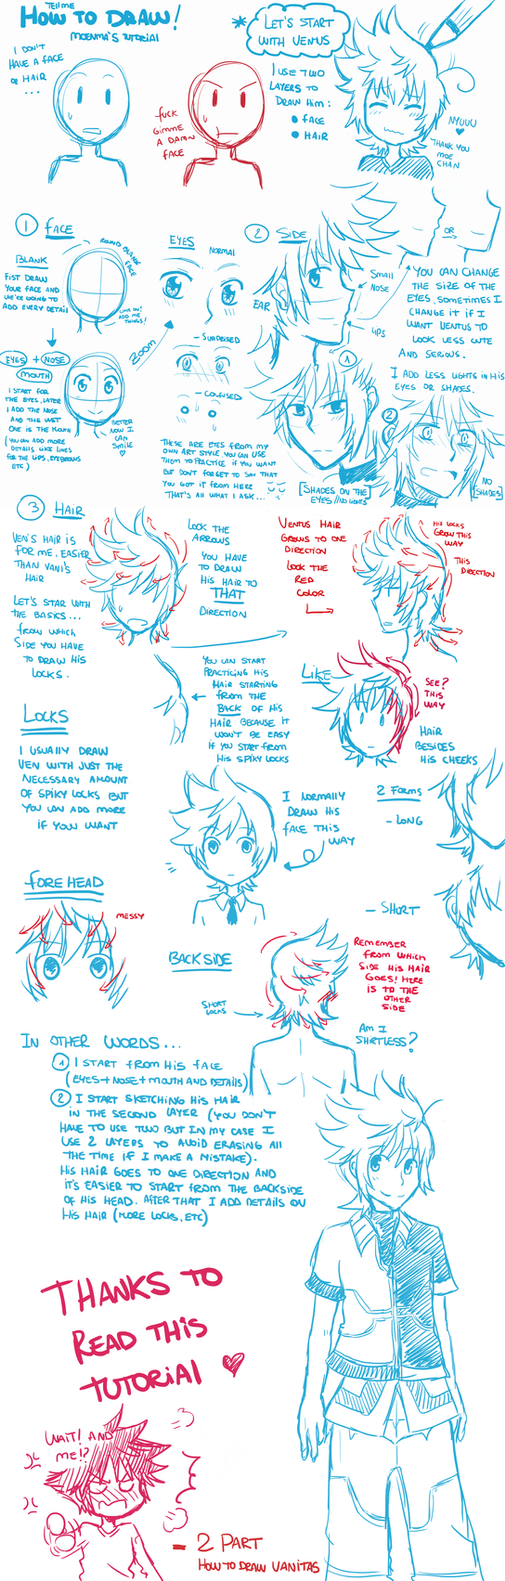 [Tutorial] How to draw - Ventus by moenitas